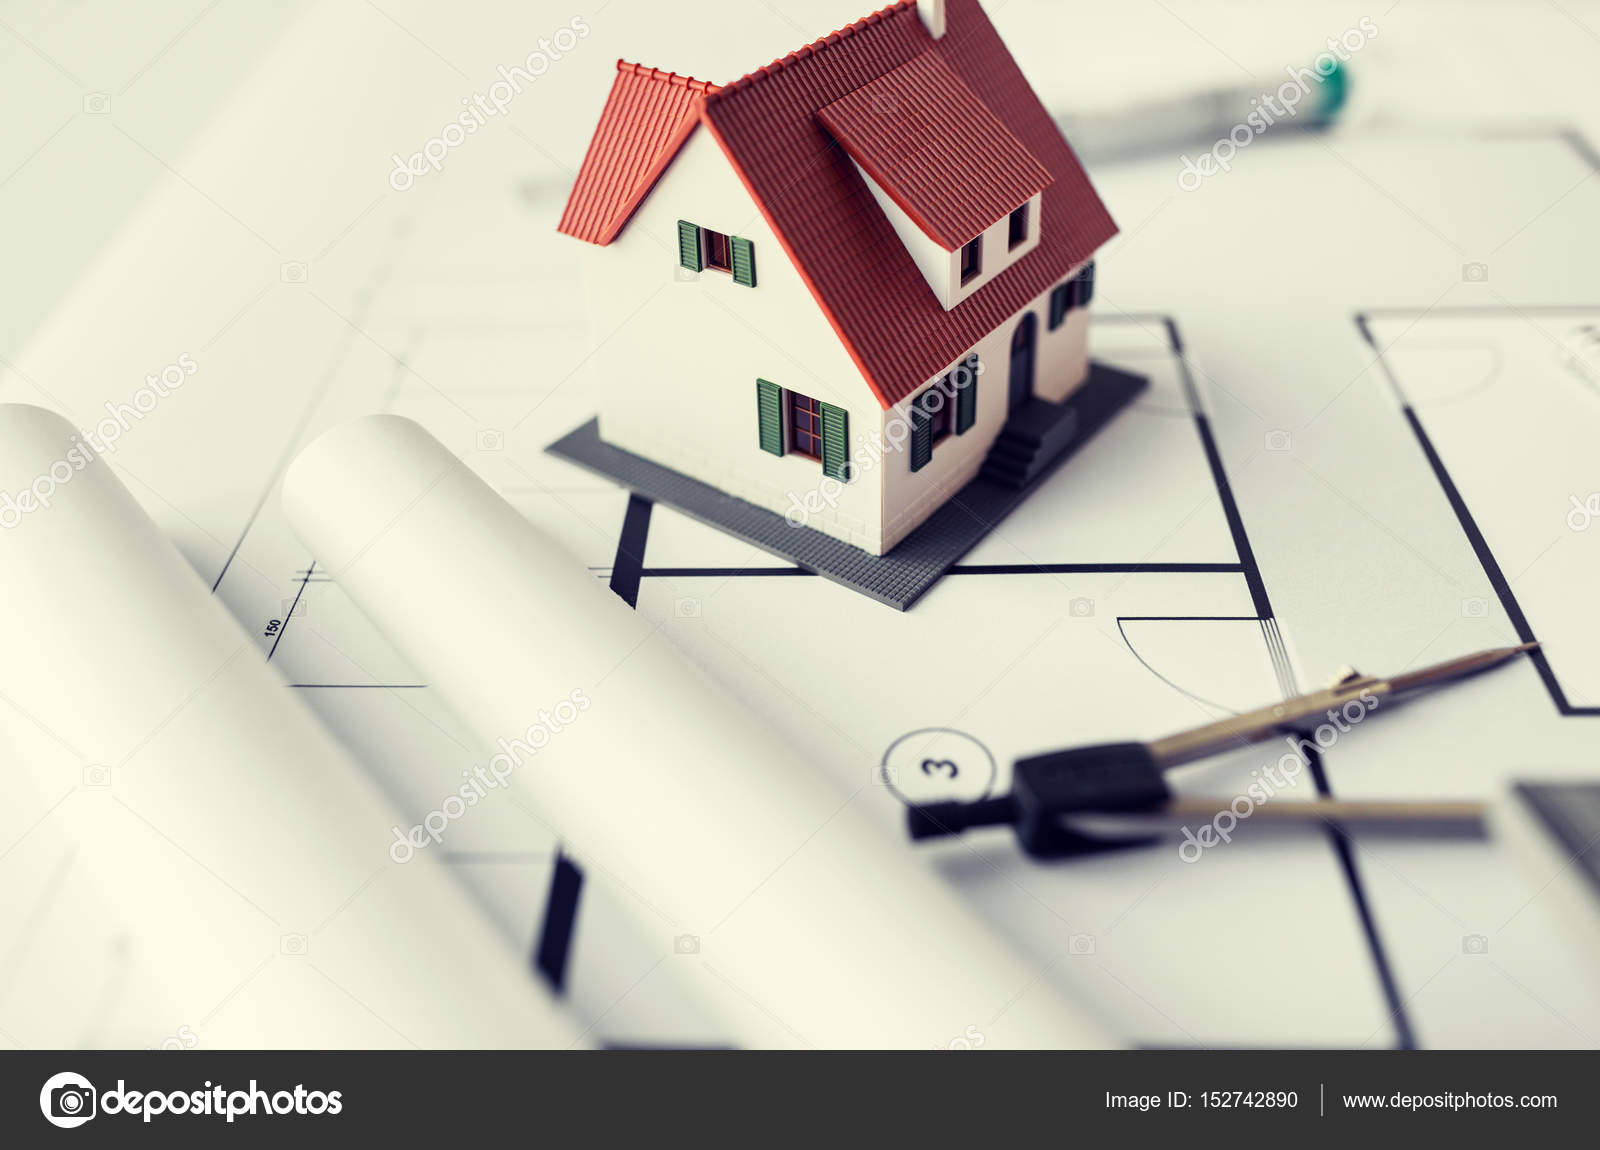 Close up of house model on architectural blueprint stock photo architecture building construction real estate and home concept close up of living house model and compass on blueprint photo by sydaproductions malvernweather